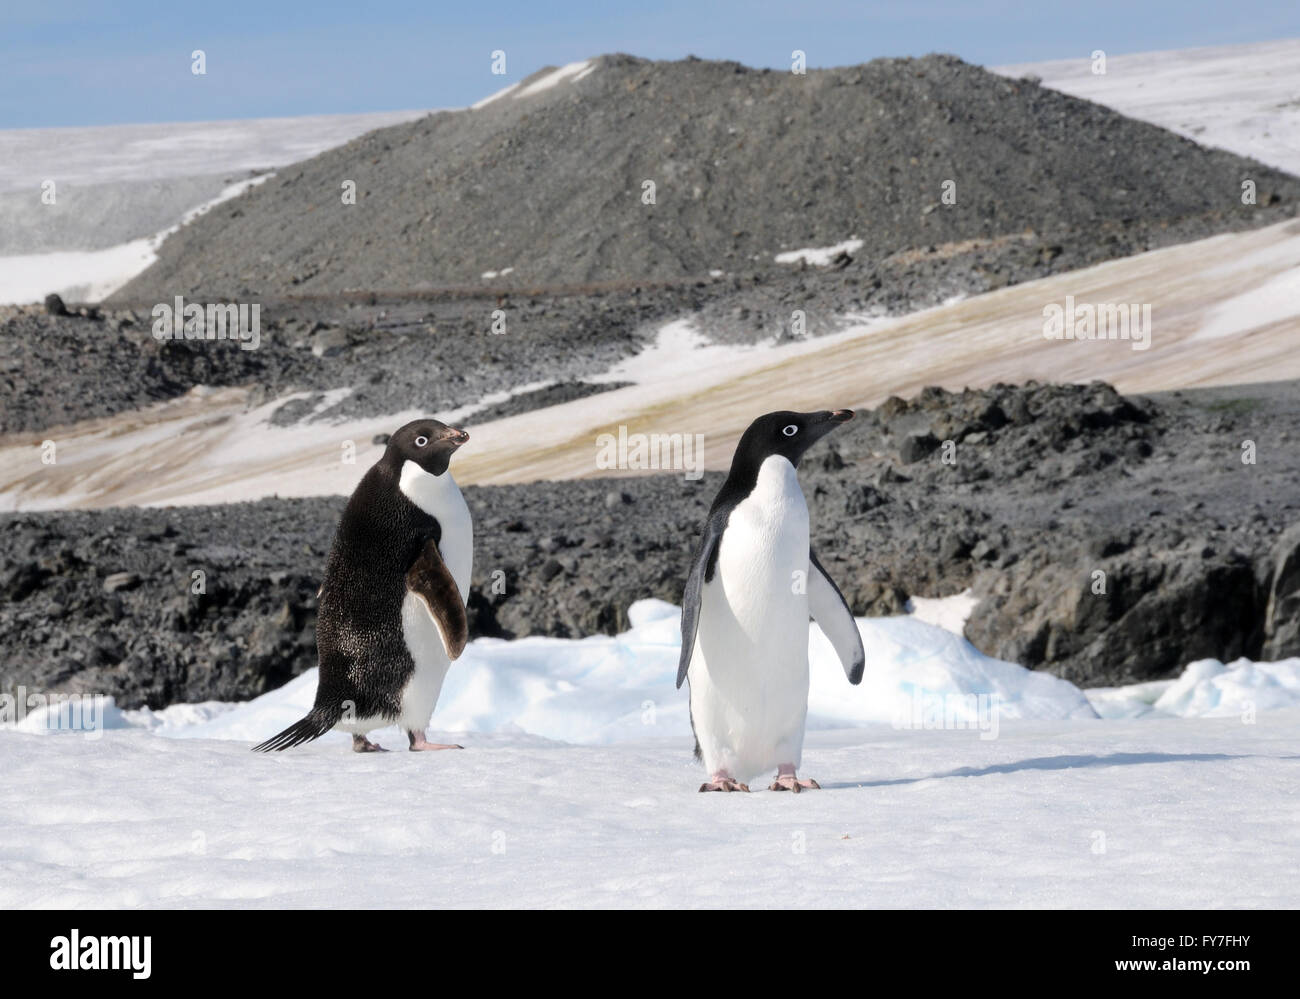 Two Adélie penguins (Pygoscelis adeliae) at their nesting colony in Hope Bay. Hope Bay, Antarctica. - Stock Image